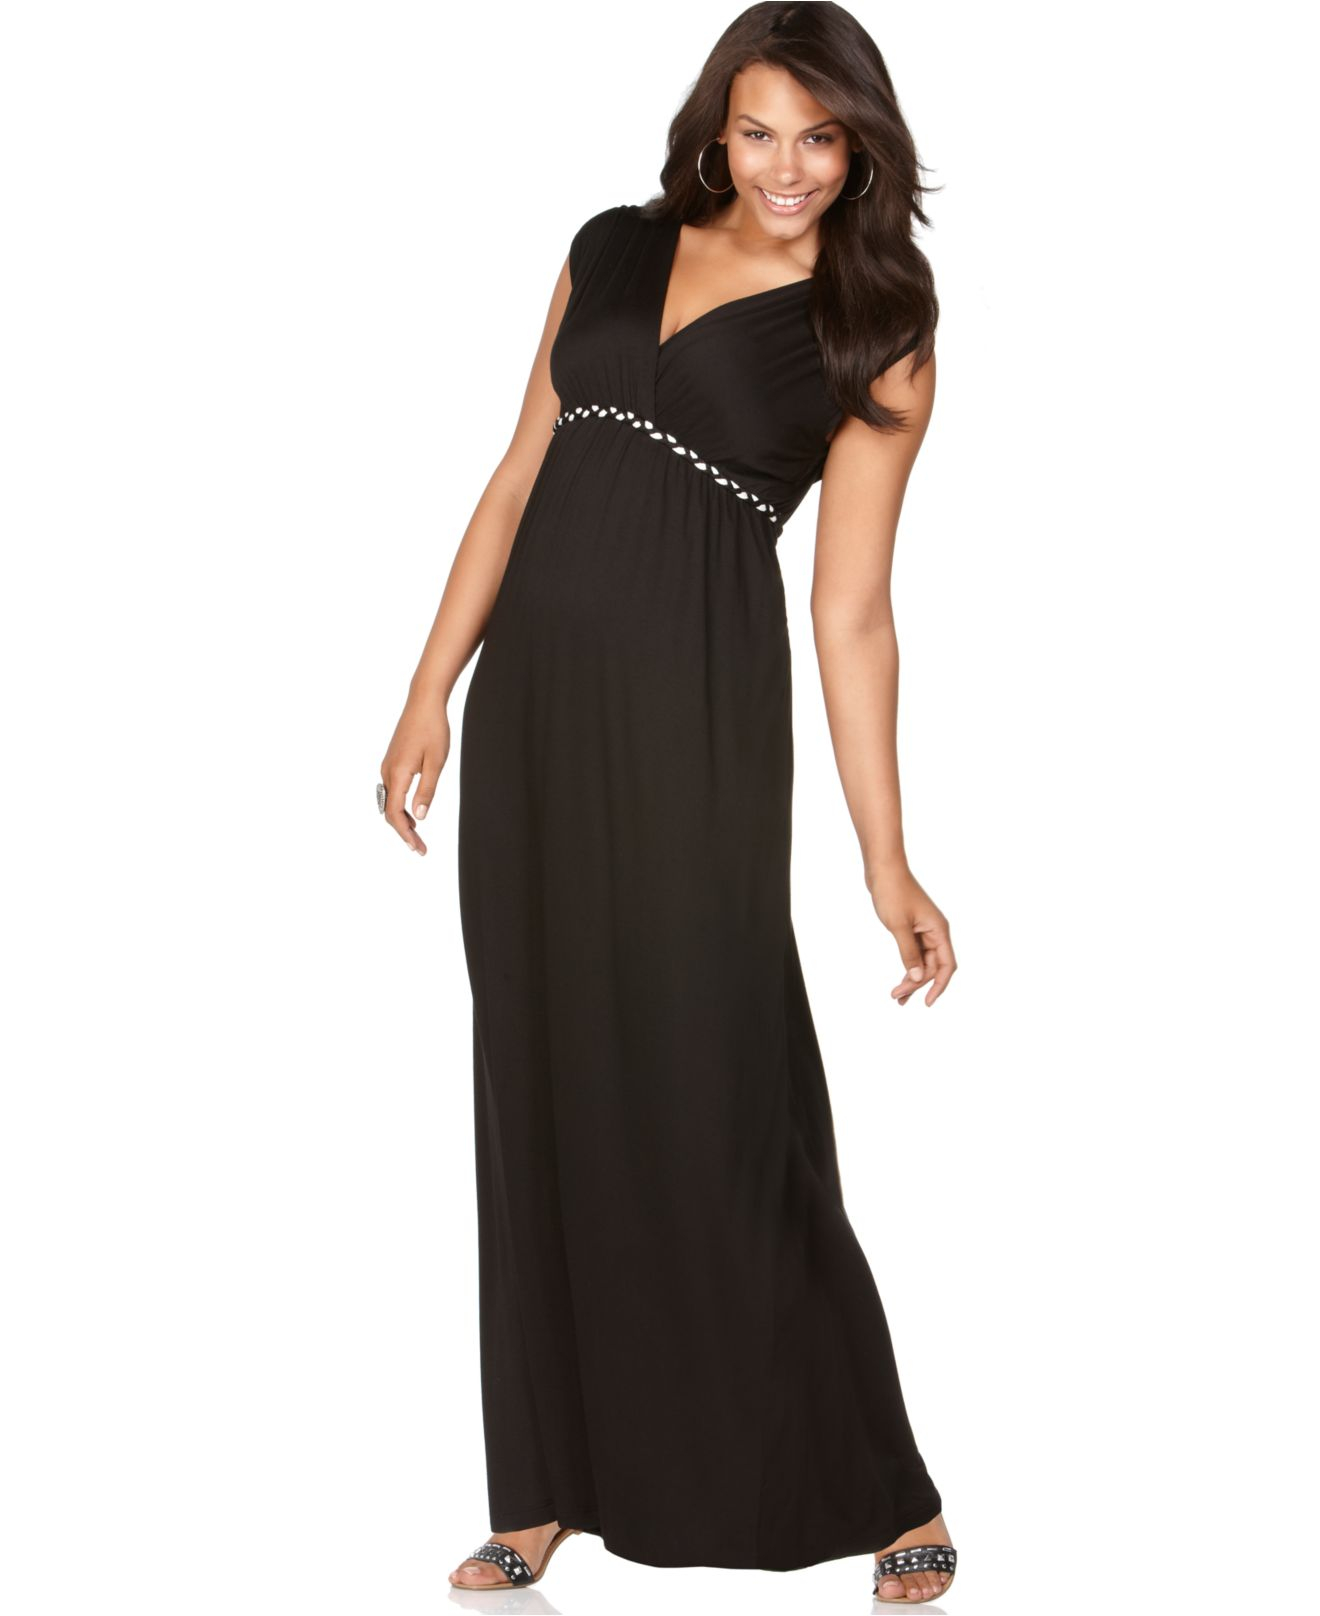 Plus Size Cap Sleeve Black Dress